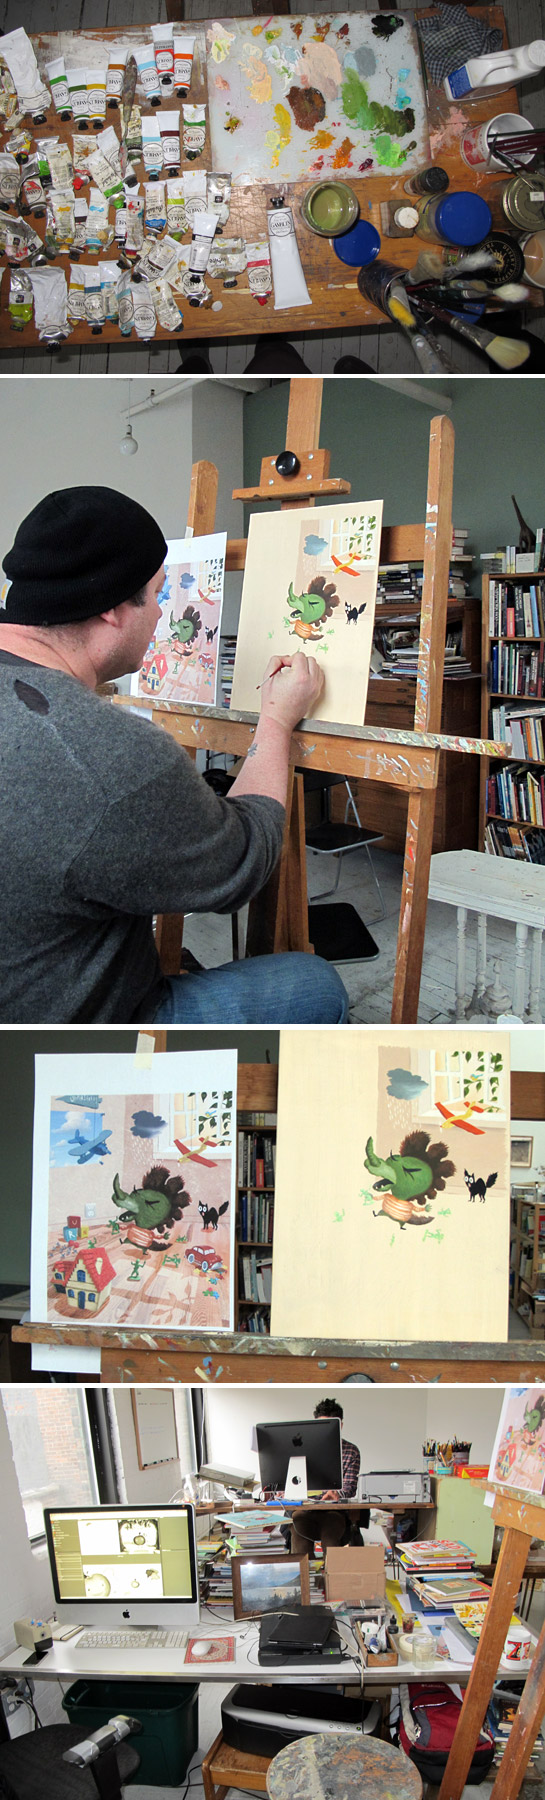 """EDWARD HEMINGWAY'S WORK SPACE. From top: Eddie's oil paints; Eddie working on a painting for an as-yet-to-be-named project; a sketch(left) and the beginnings of a final oil painting. The sketch looks like it could be a final right? Eddie uses a combination of drawing and collage for his sketches. """"Actually it loosens me up in a way.""""; Eddie's computer with a black & white comp of the sequel to Bad Apple."""